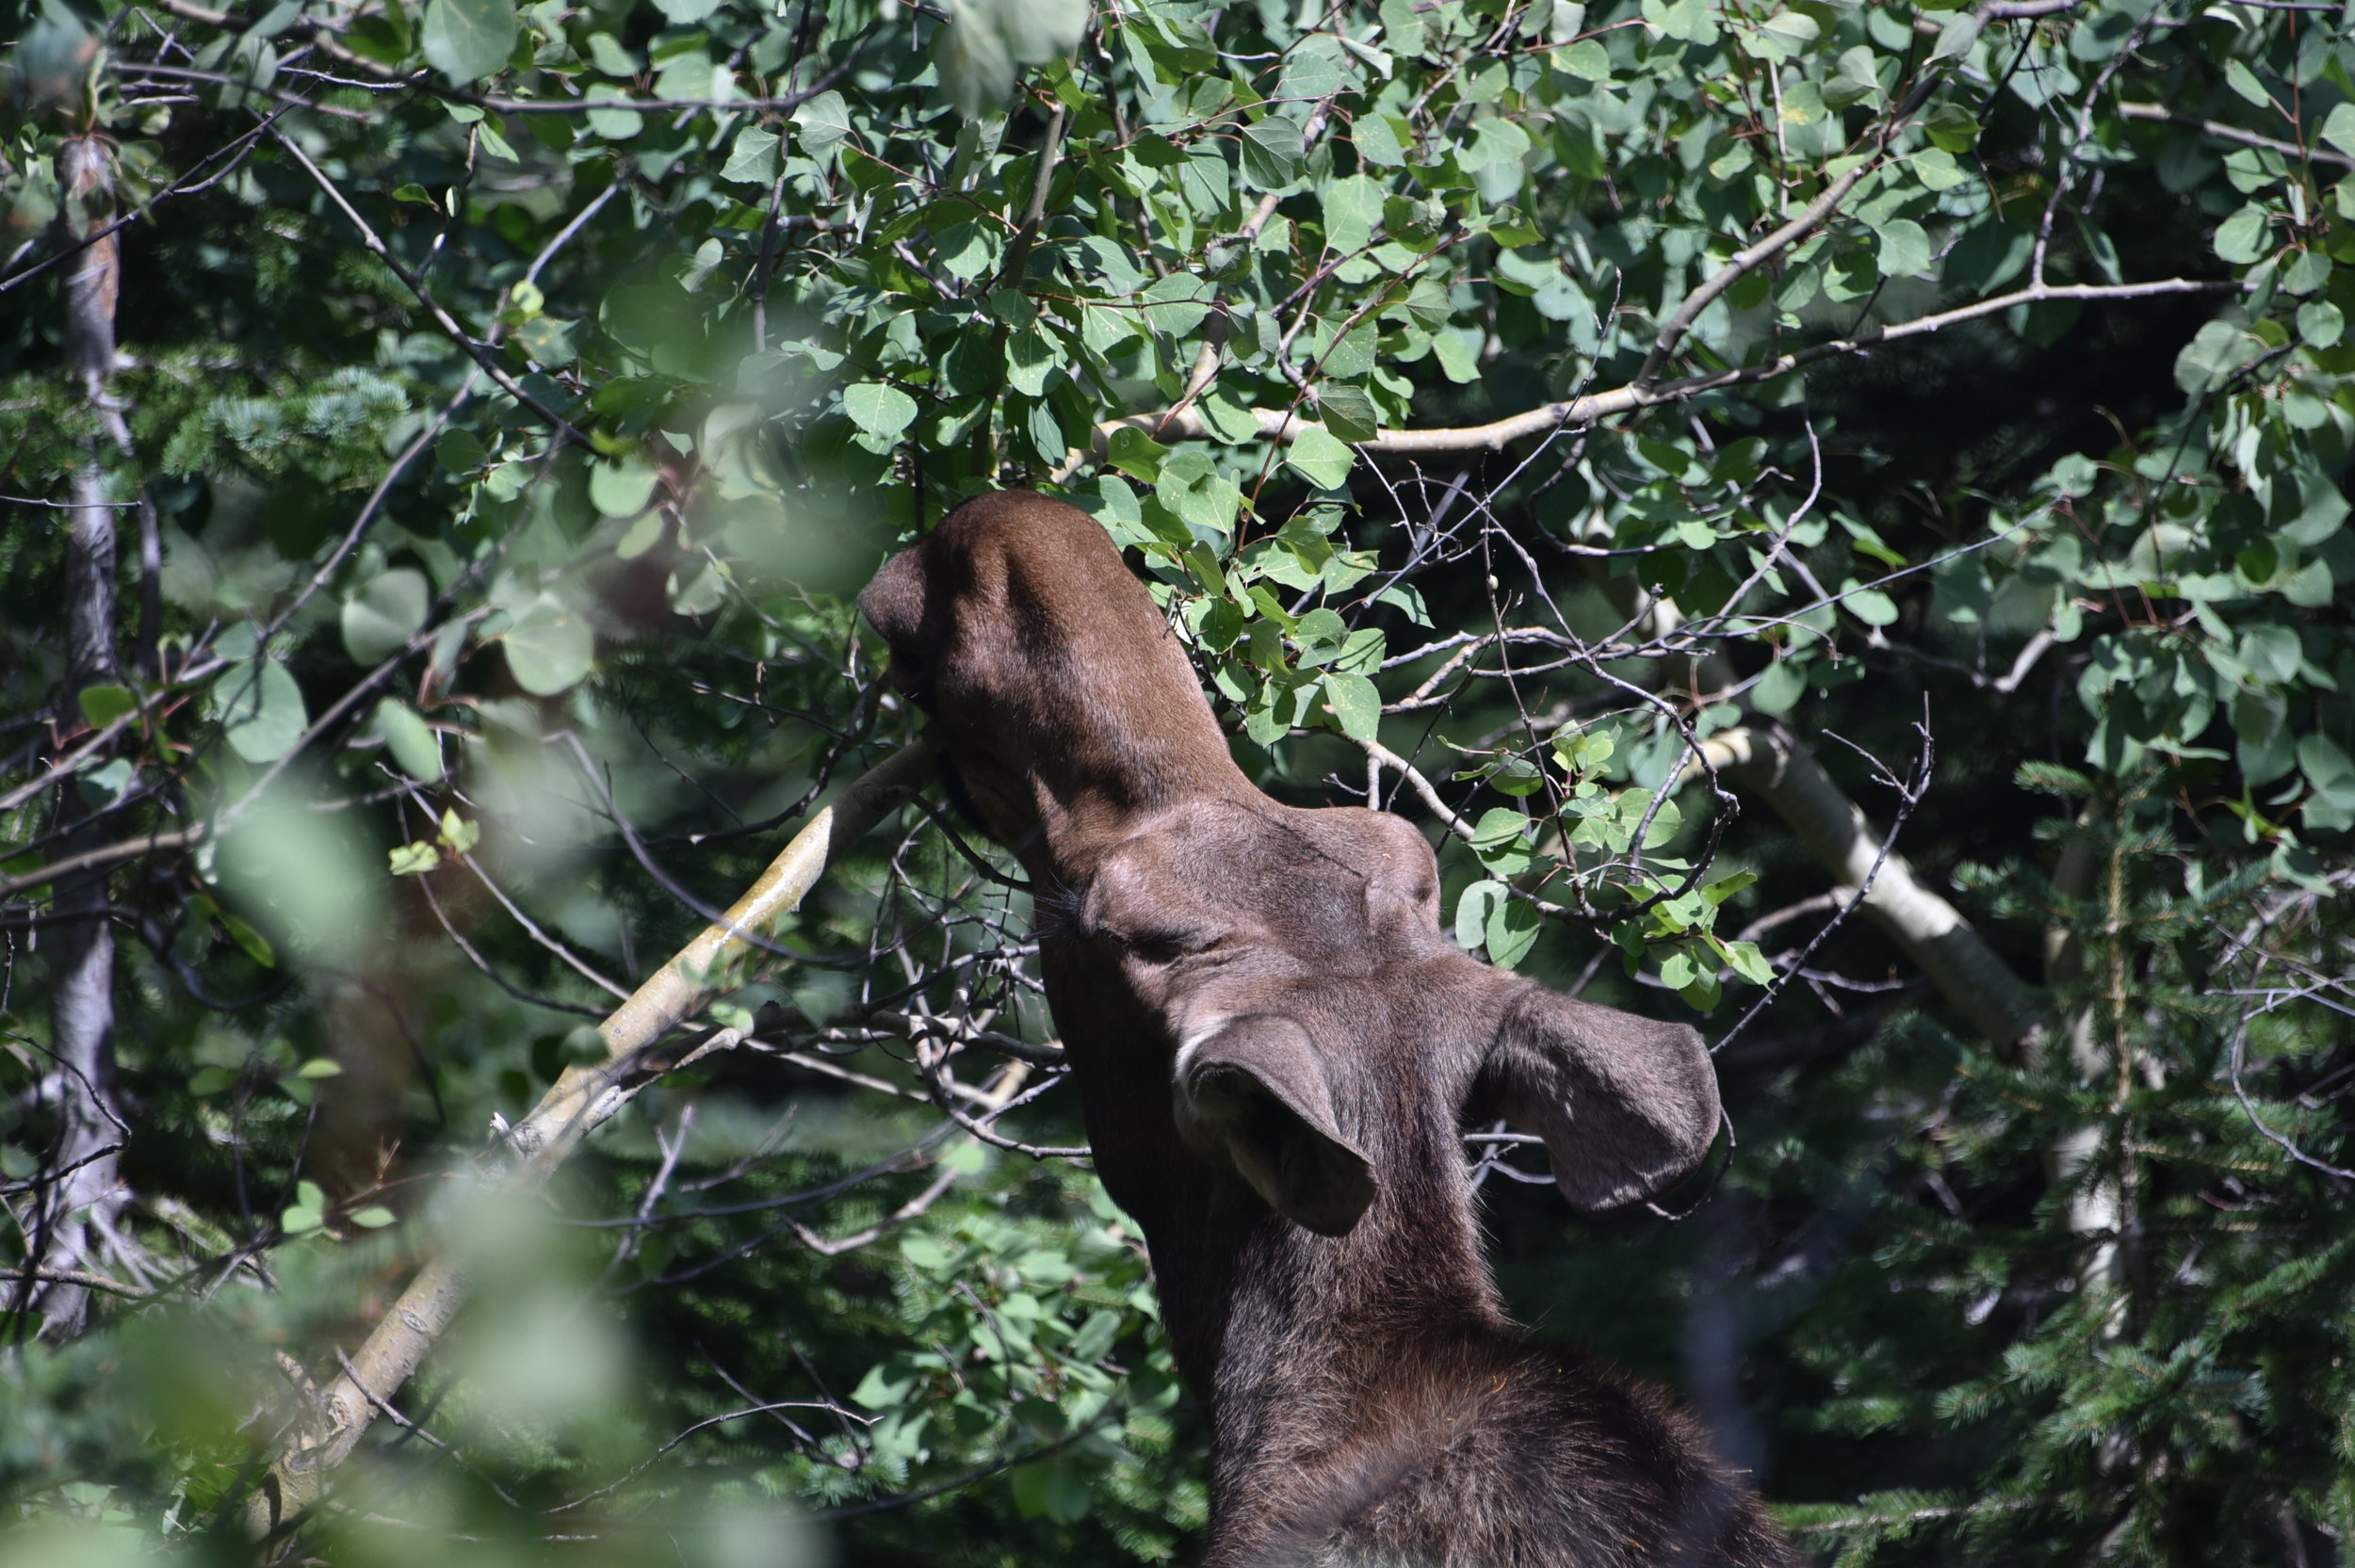 This cow moose surprised us next to the trail. Luckily she cared more about lunch than us!